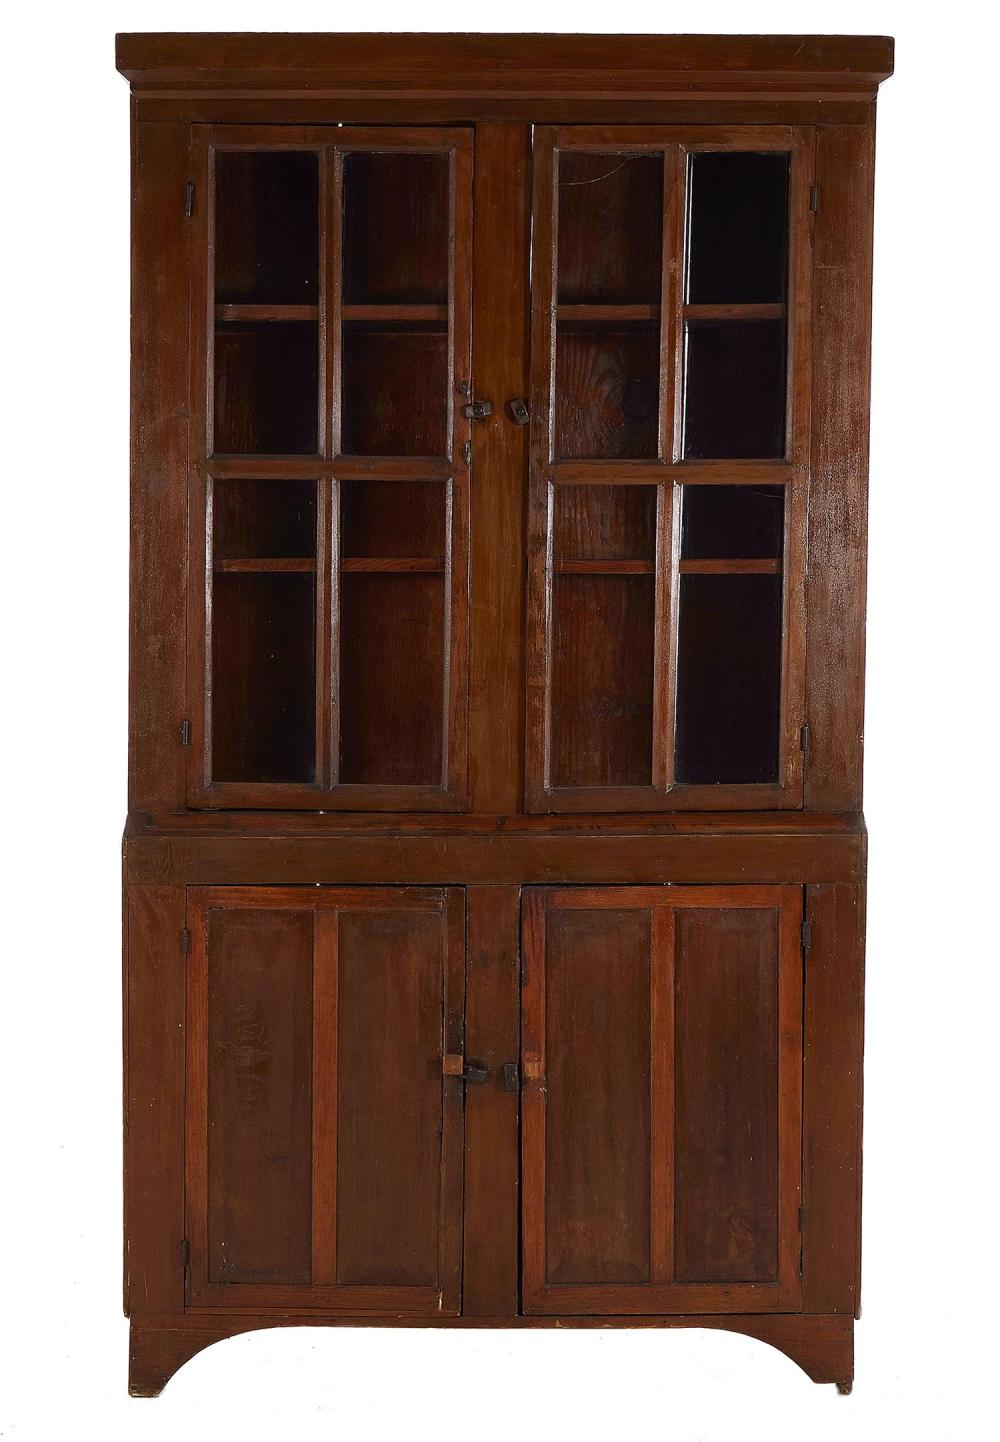 Southern pine cabinet